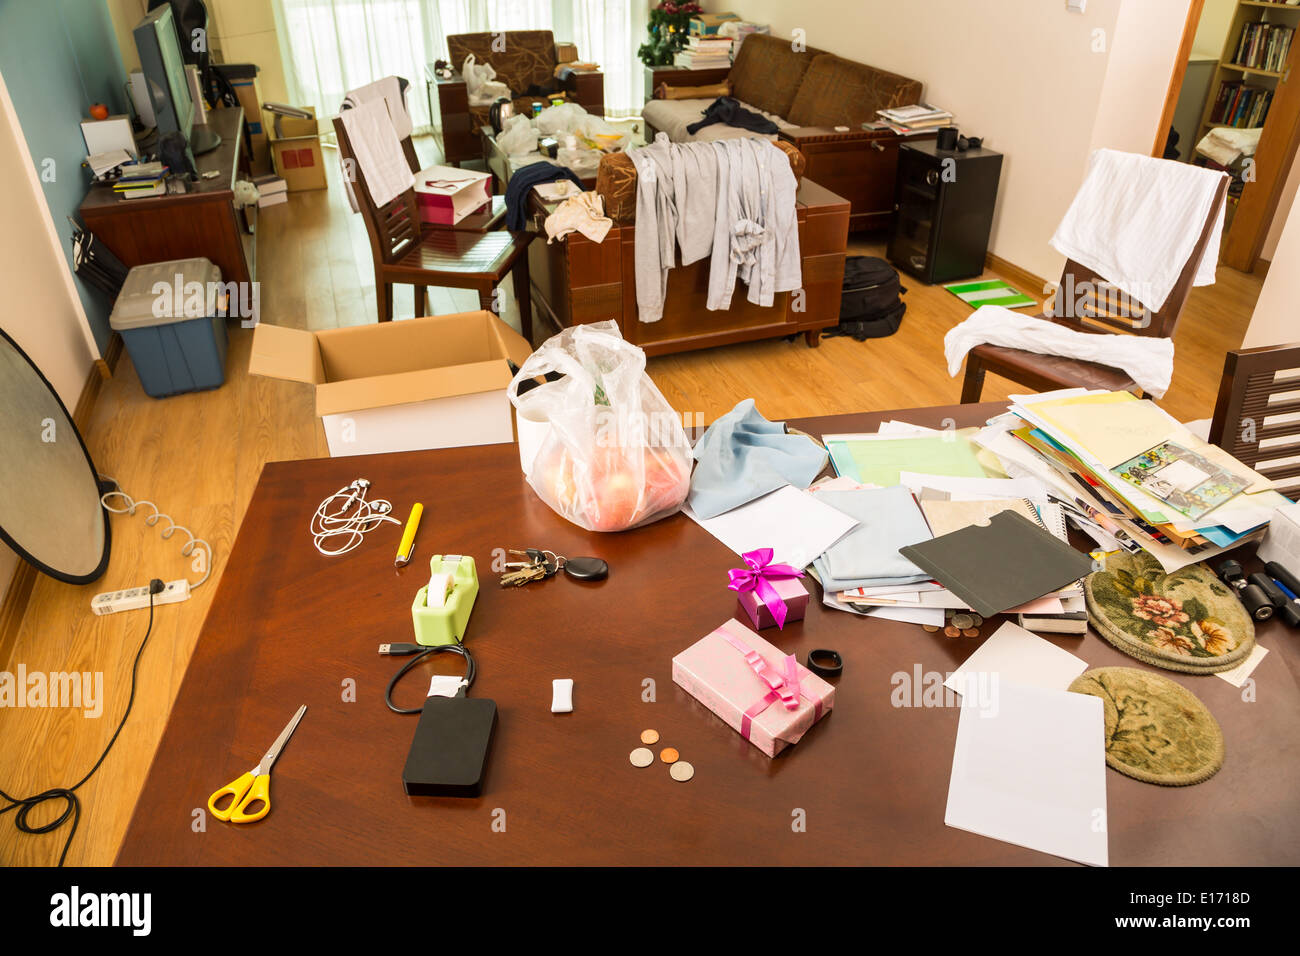 Messy living room with clothes and other stuff - Stock Image